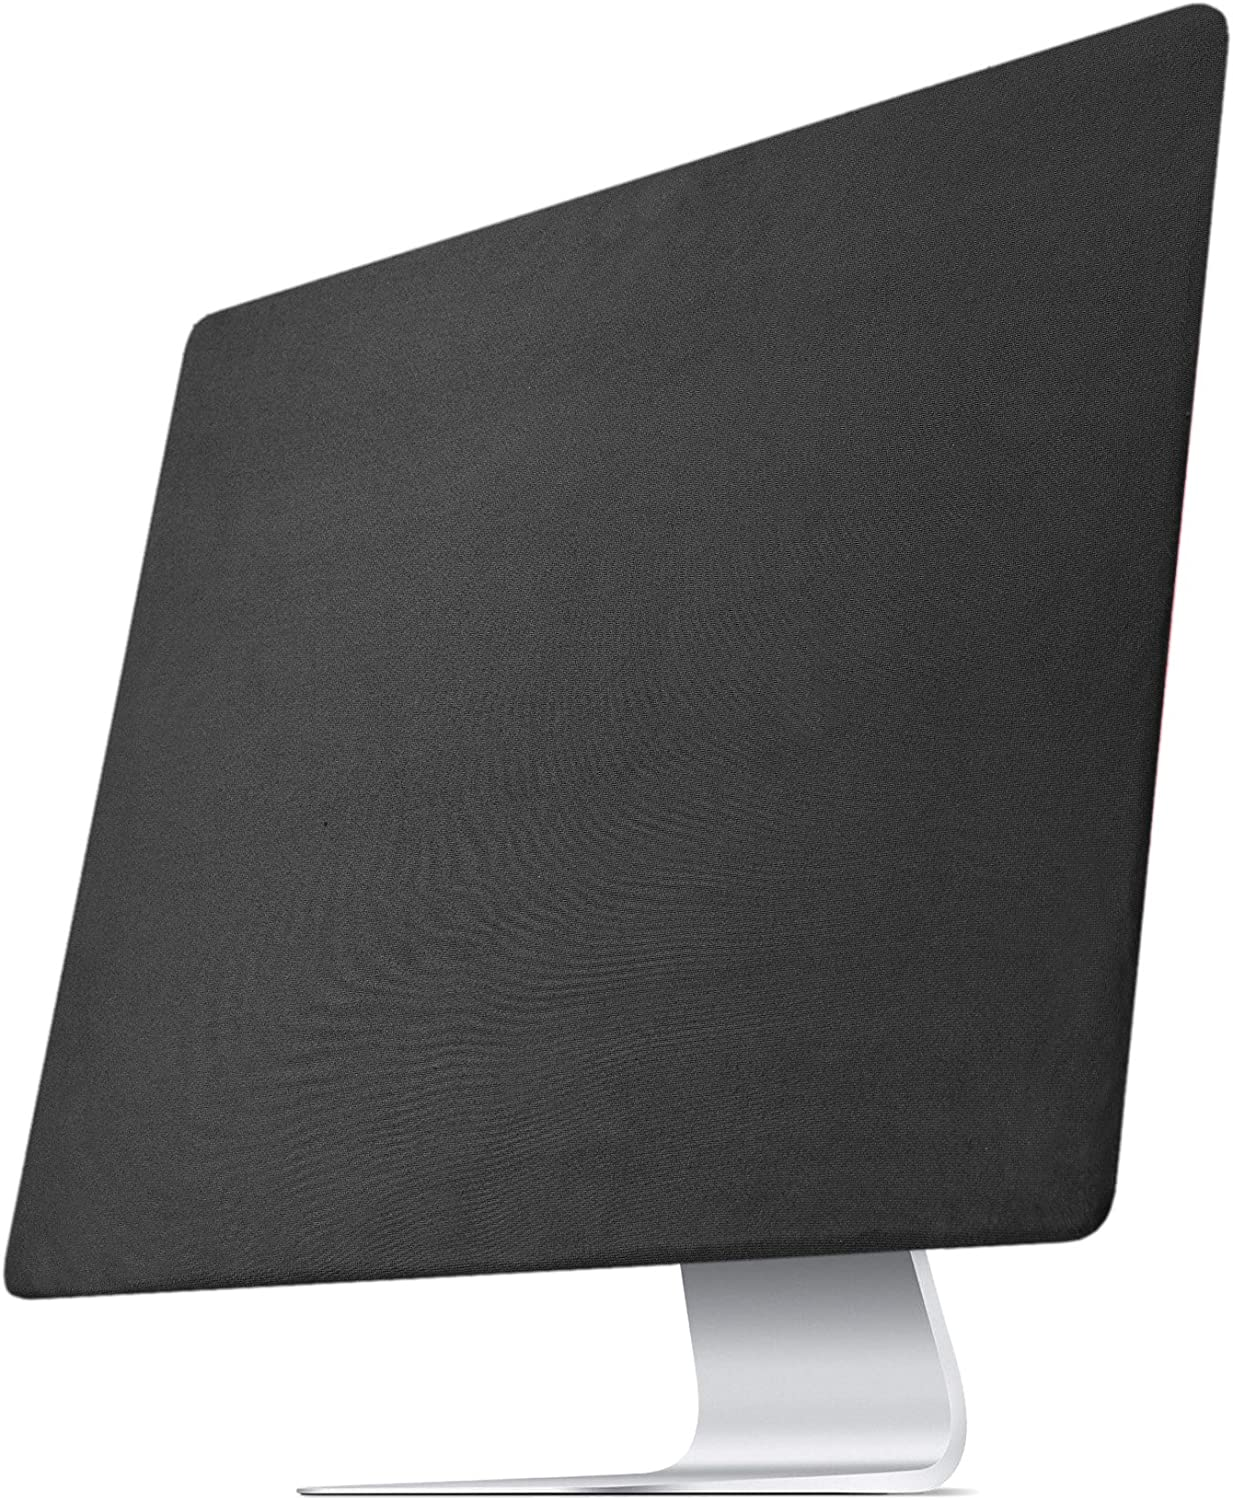 iMac Apple 21.5 inch Screen dust Cover Sleeve Display Monitor Protector for A1224 / A1311 / A1418 (21.5-inch, Black)